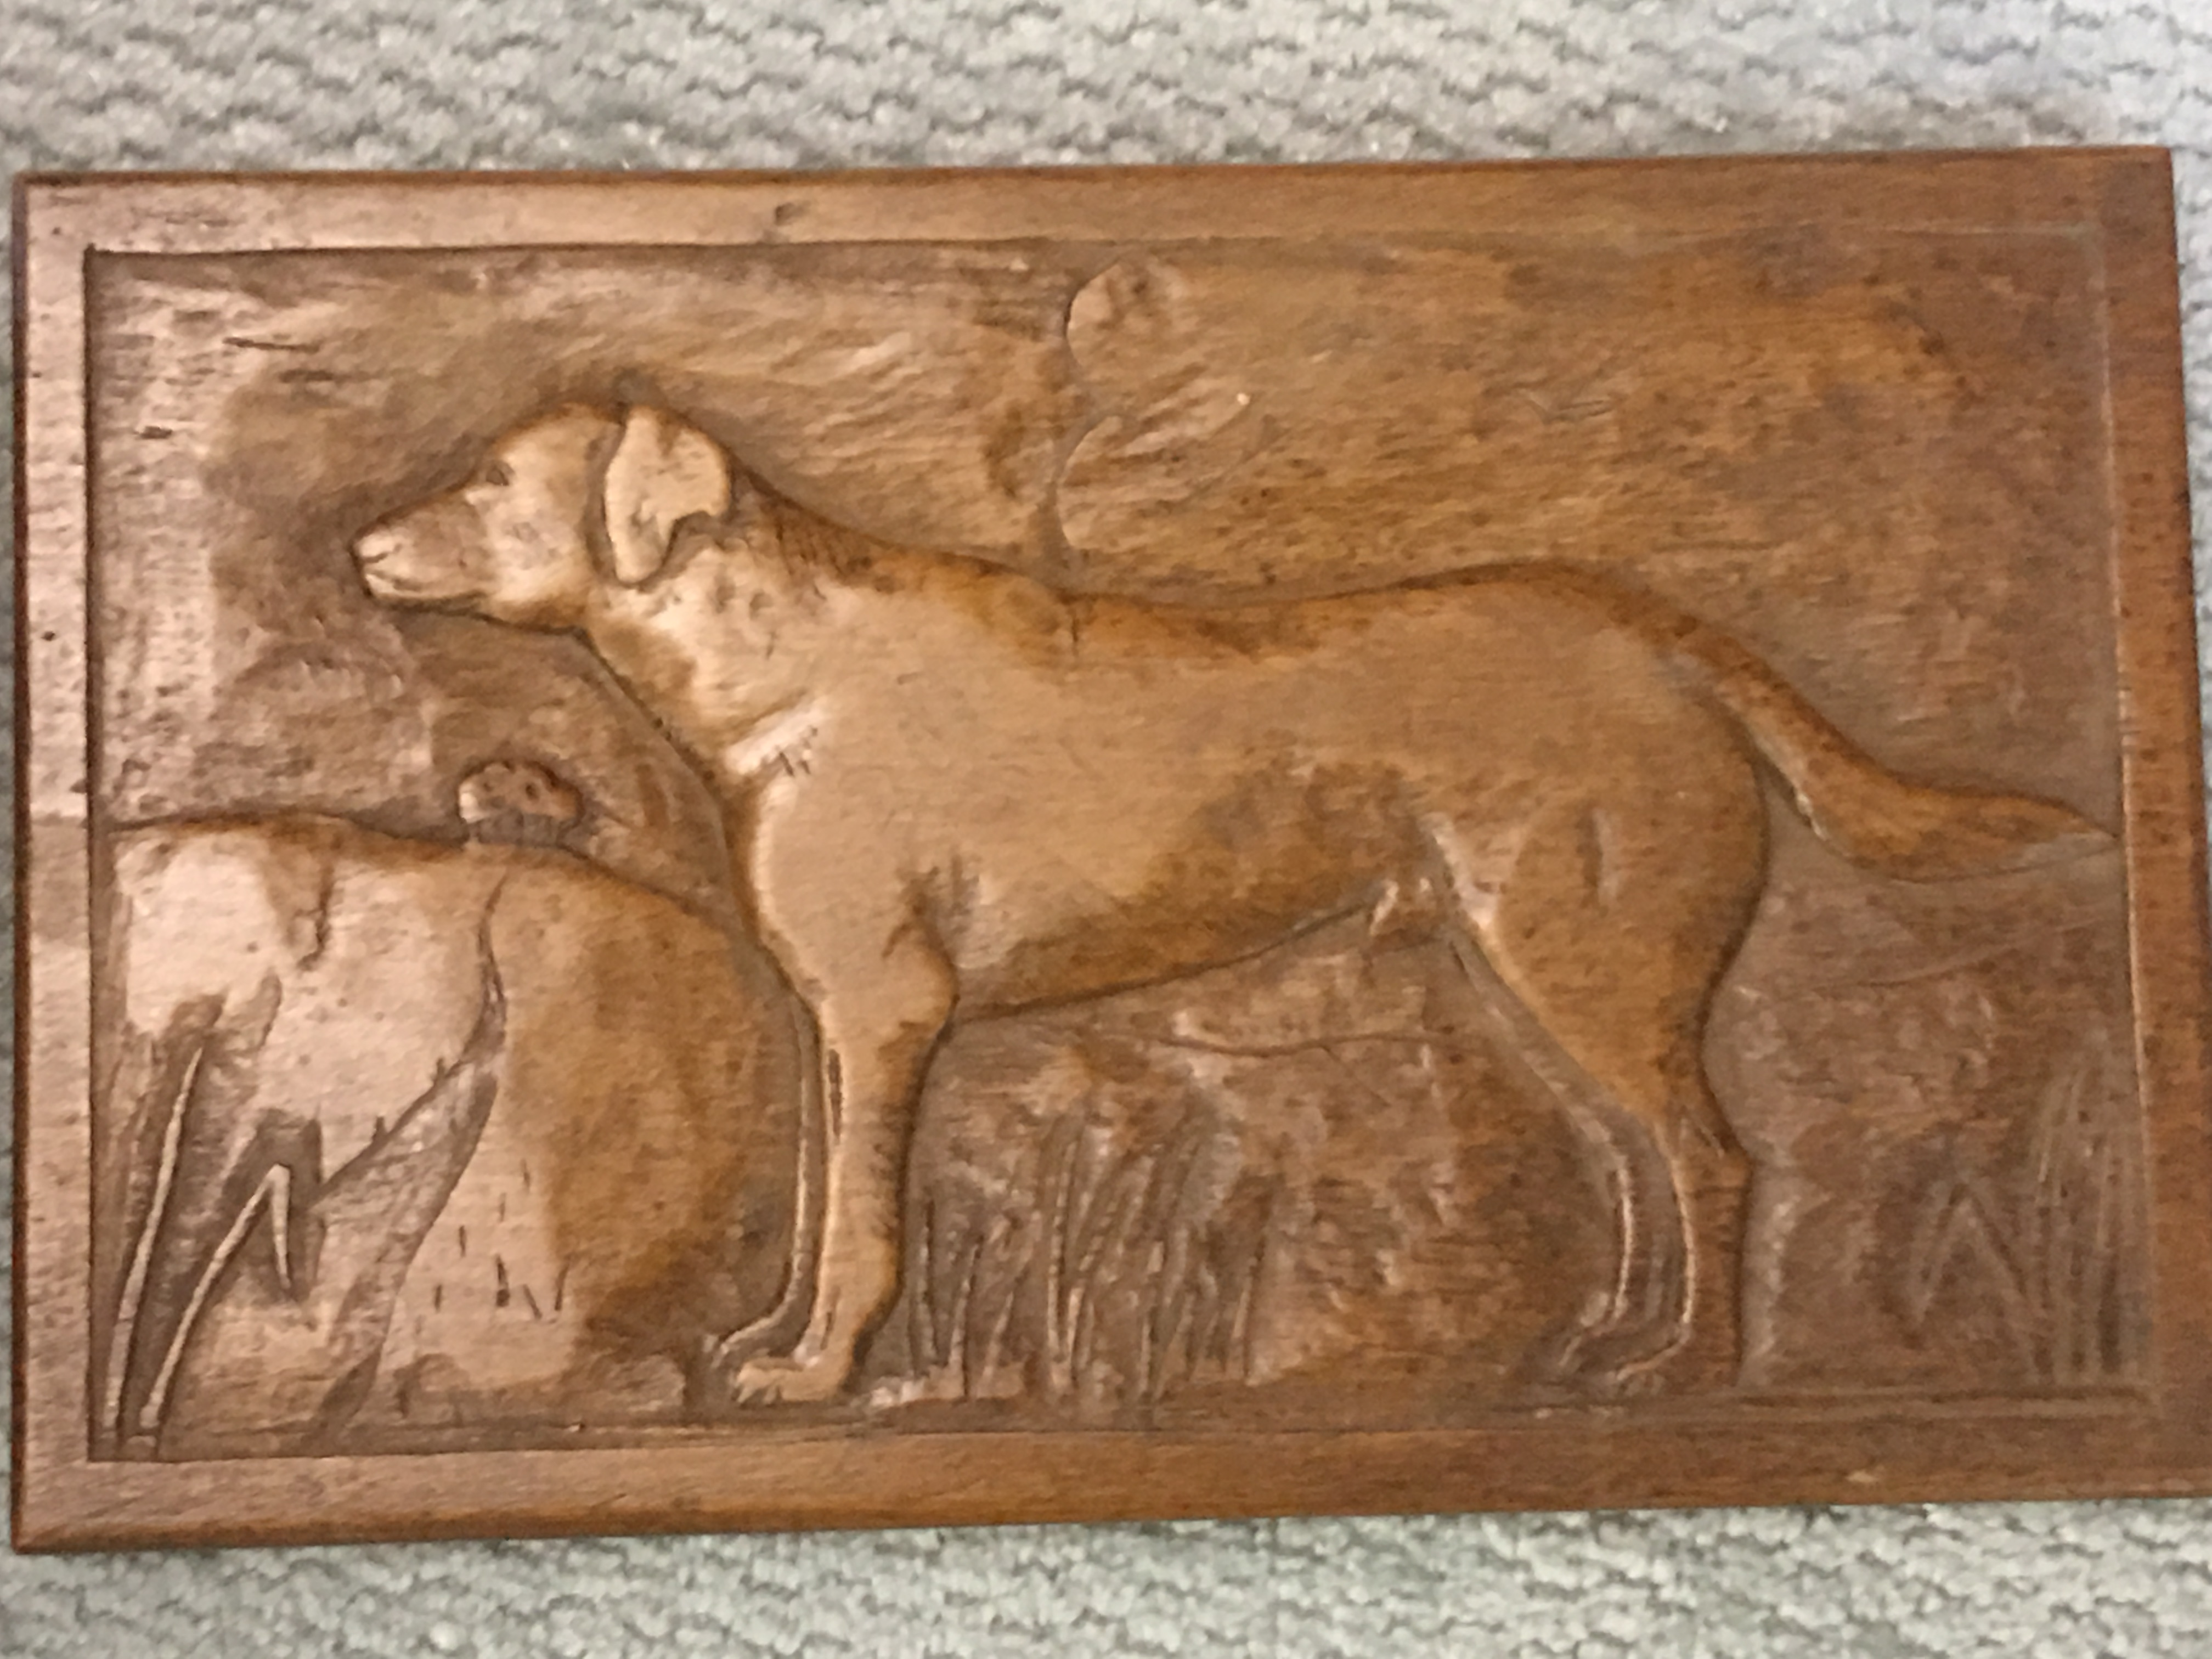 Carving of a dog